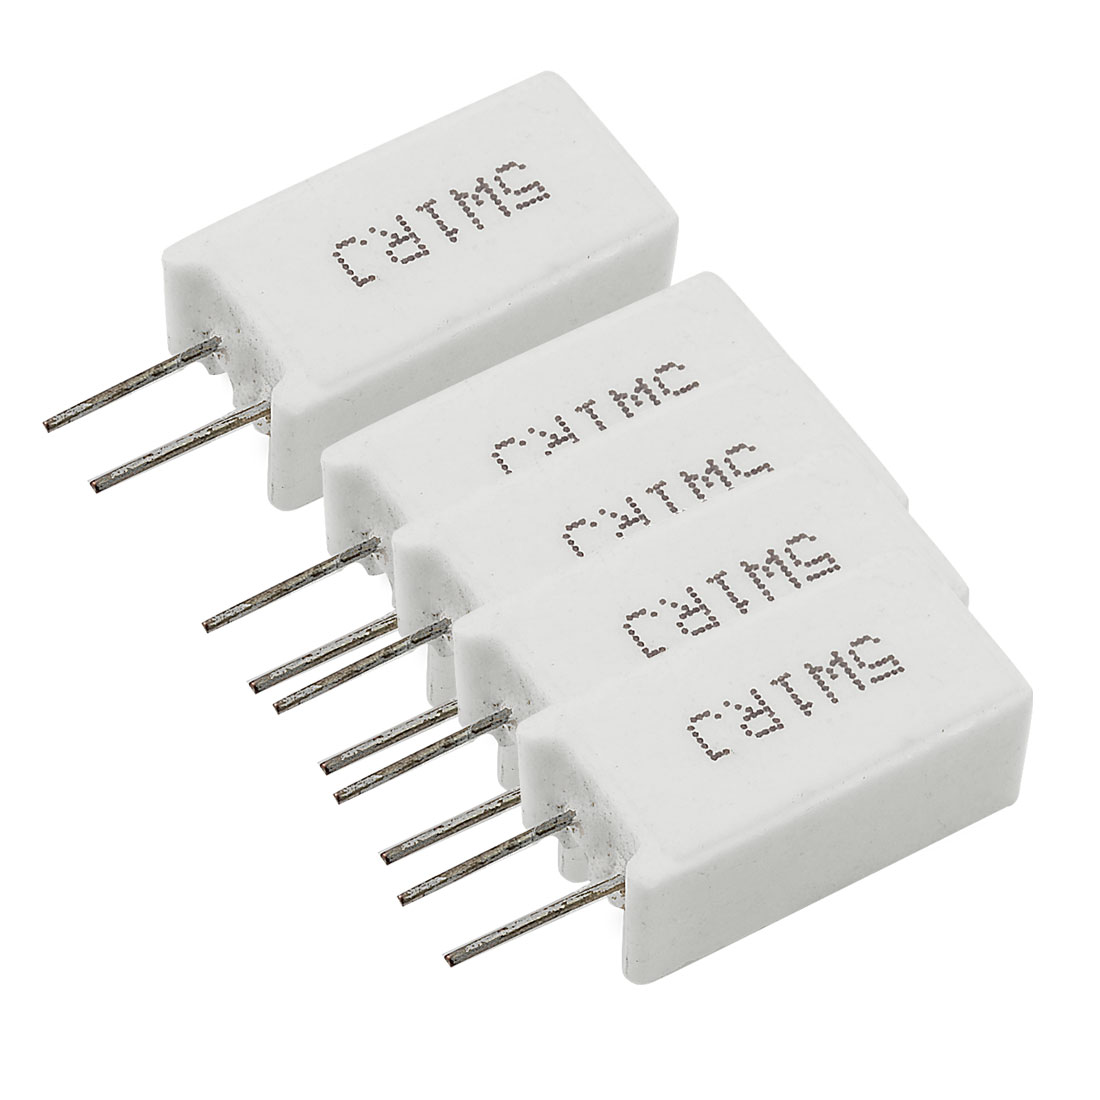 5 Pcs Wirewound Radial Lead Cement Resistors 5% 5W 5 Watt 1 Ohm